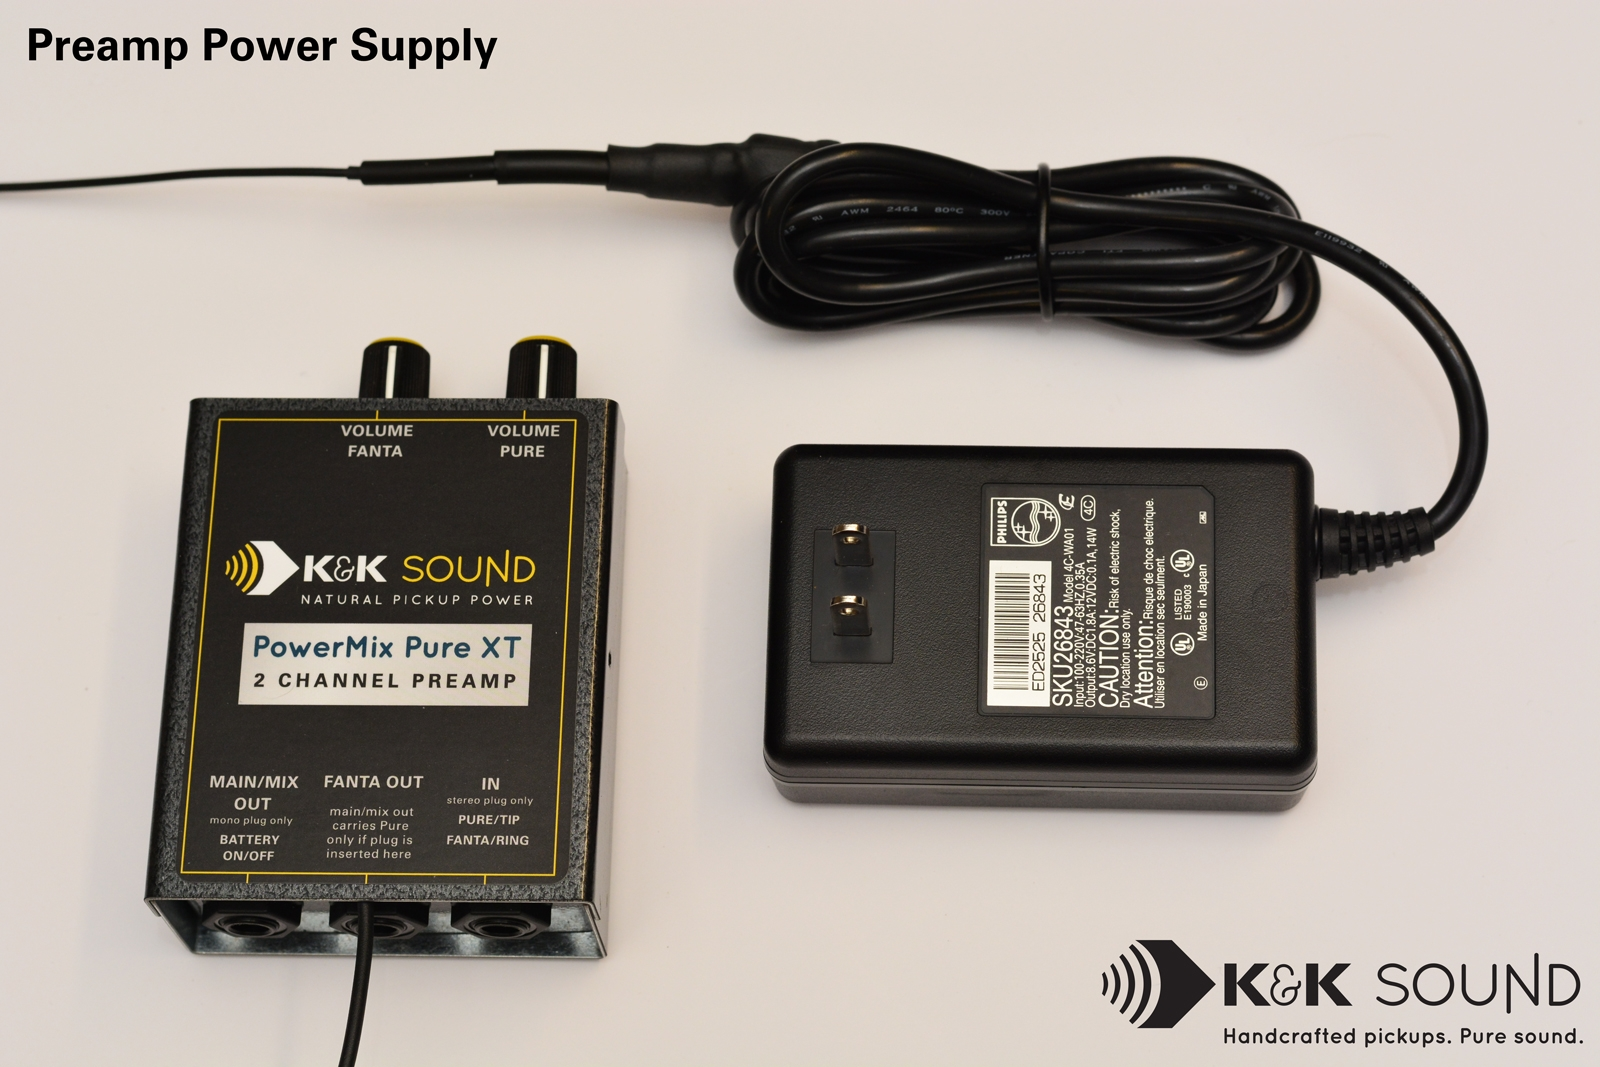 Power Supply for K&K Preamps